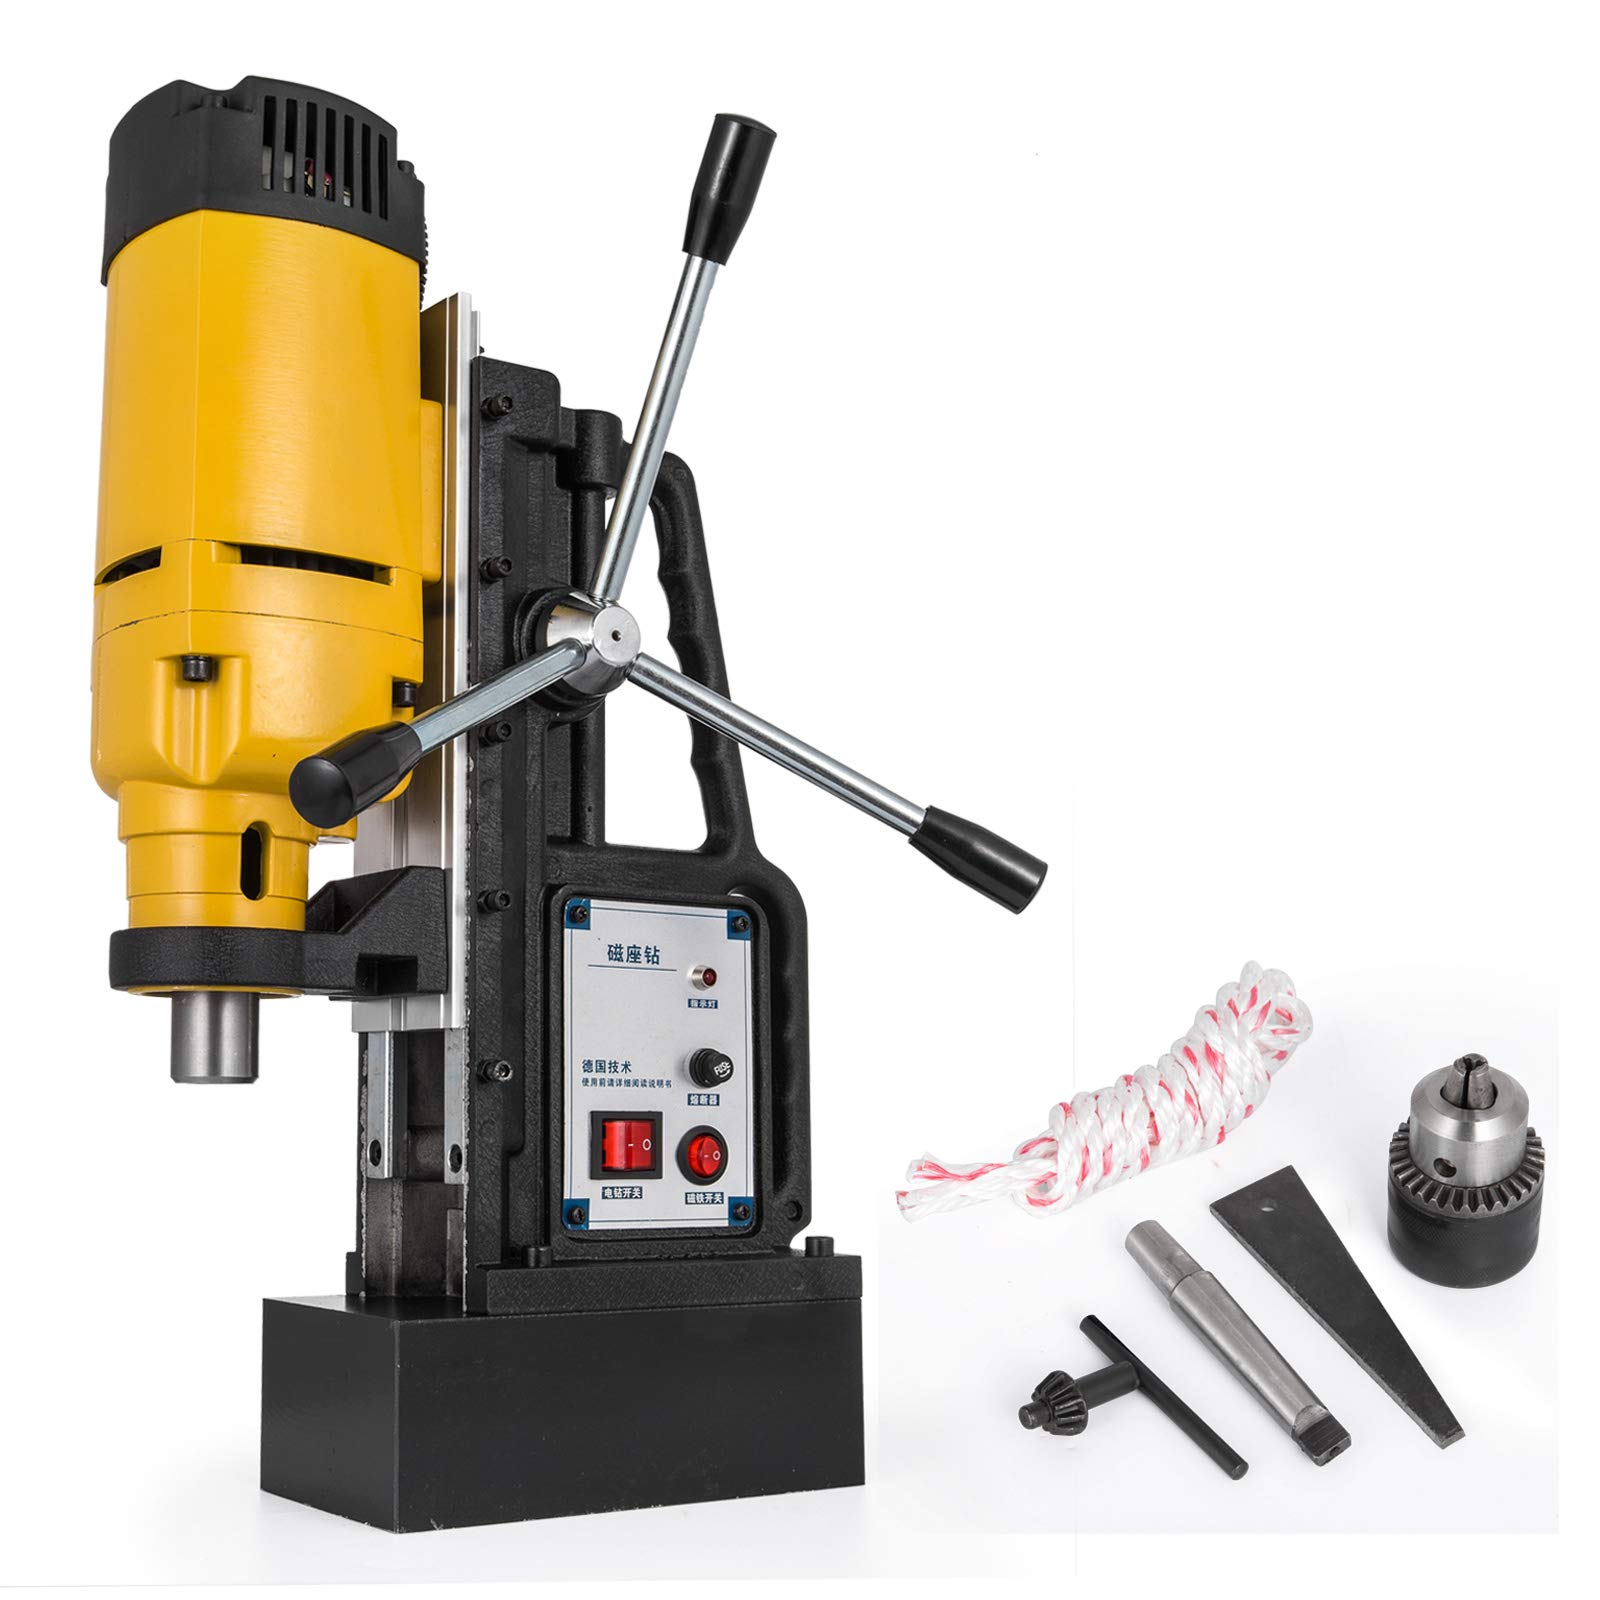 Mophorn 1200W Magnetic Drill Press with 0.9 Inch (23mm) Boring Diameter Magnetic Drill Press Machine 2920 Lbs Magnetic Force Magnetic Drilling System 500RPM Portable Electric Magnetic Drill Press